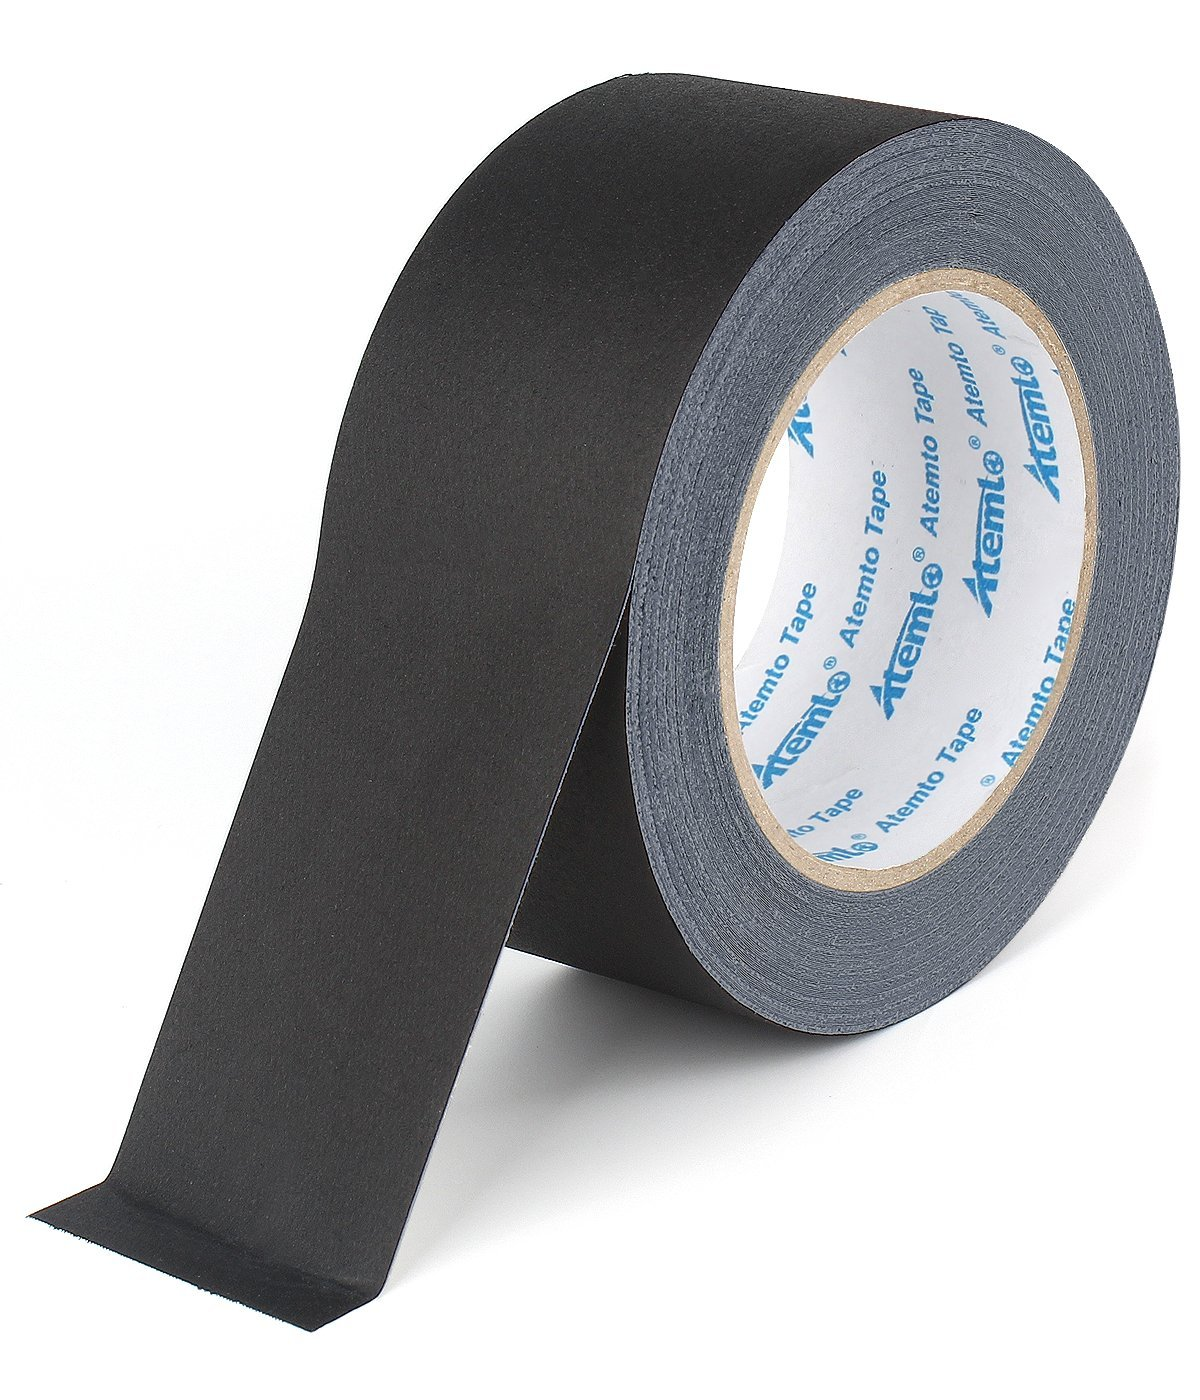 Gaffer Tape, Atemto Heavy Duty Non Reflective Adhesive Gaffers Tape Black 2inch×30yards Professional Easy to Tear Removable No Residue Better Duct Electrical Gaffer's Stage Tape